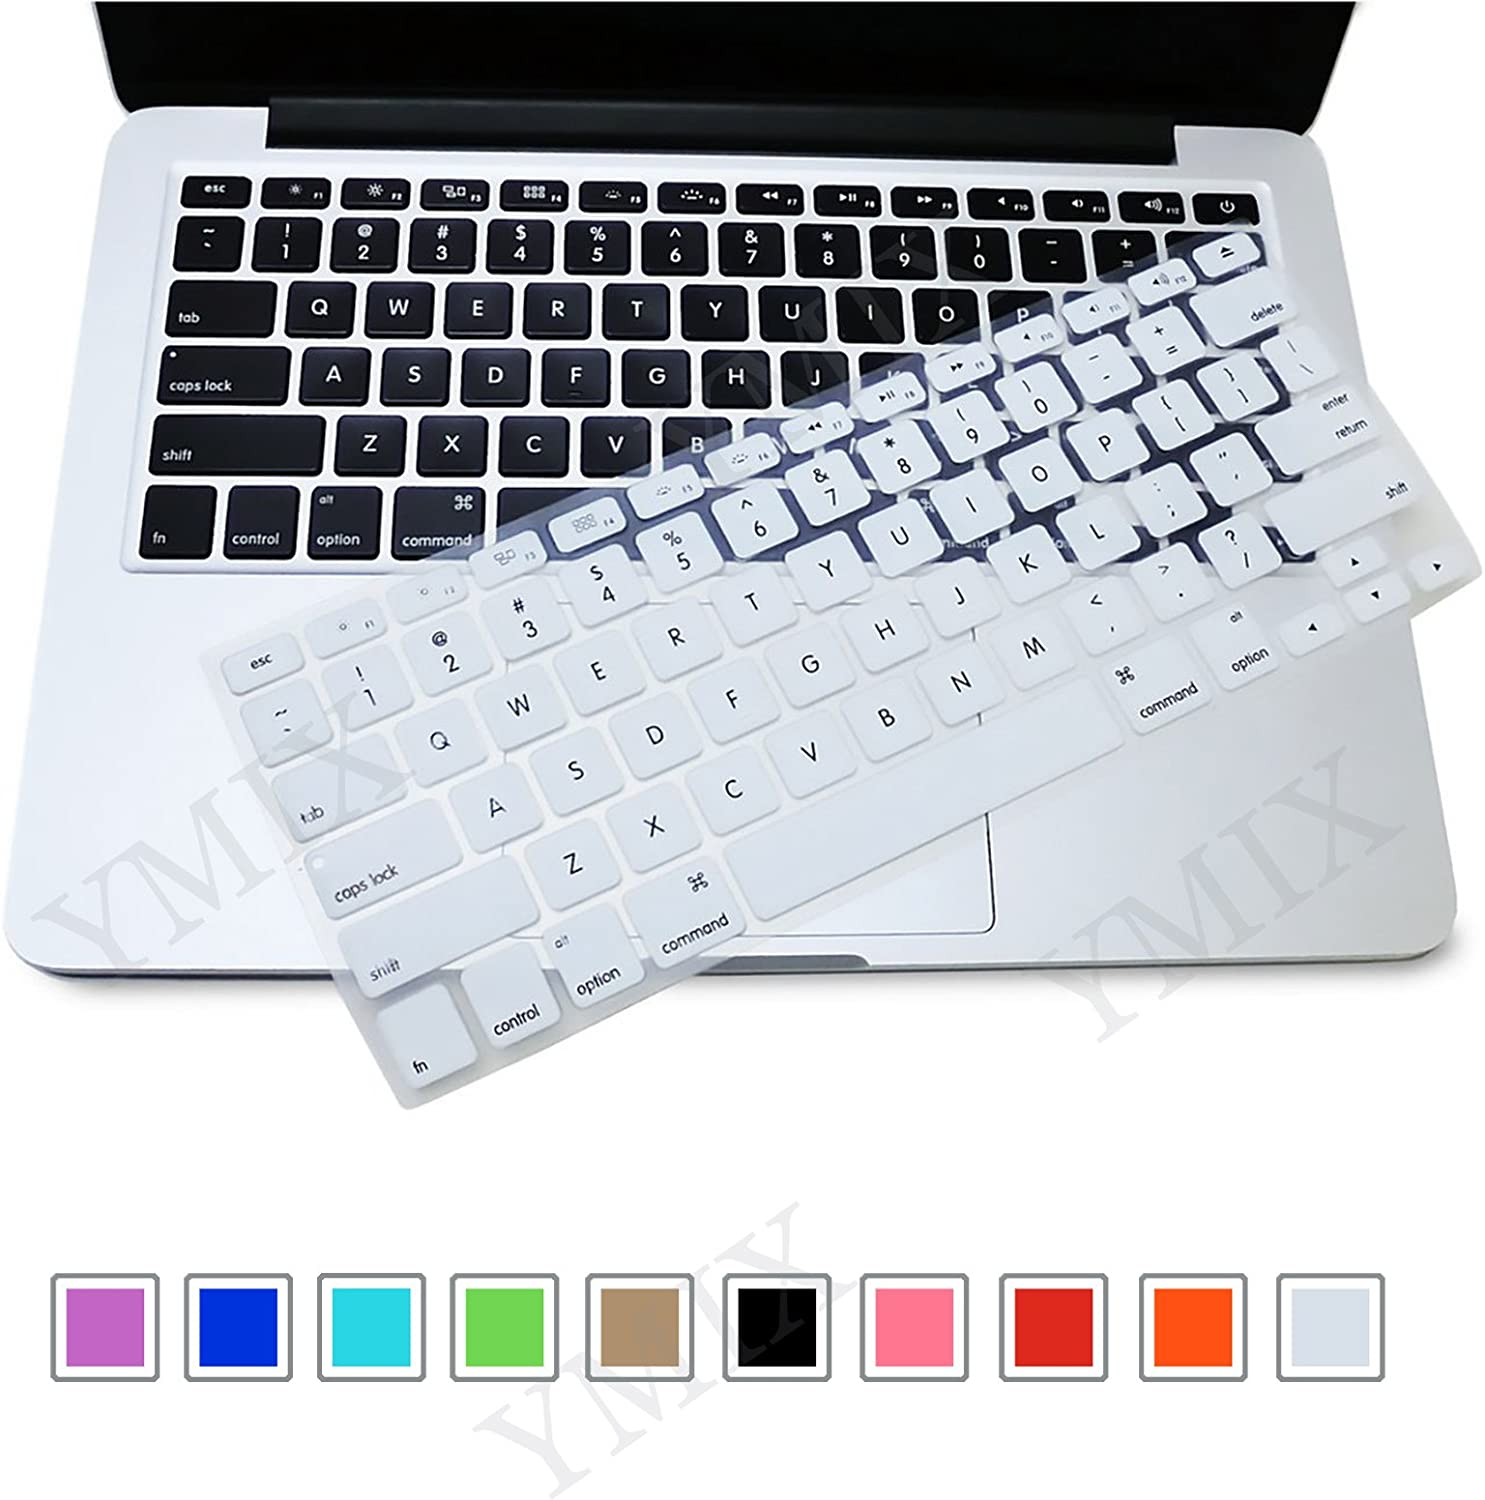 Funut Silicone Keyboard Cover Dust-Proof Washable Skin Gel Keyboard Protector for Old MacBook Pro 13 15 17 Air 13 2015 or Older Version iMac and Air 13,iMac Wireless Keyboard, White